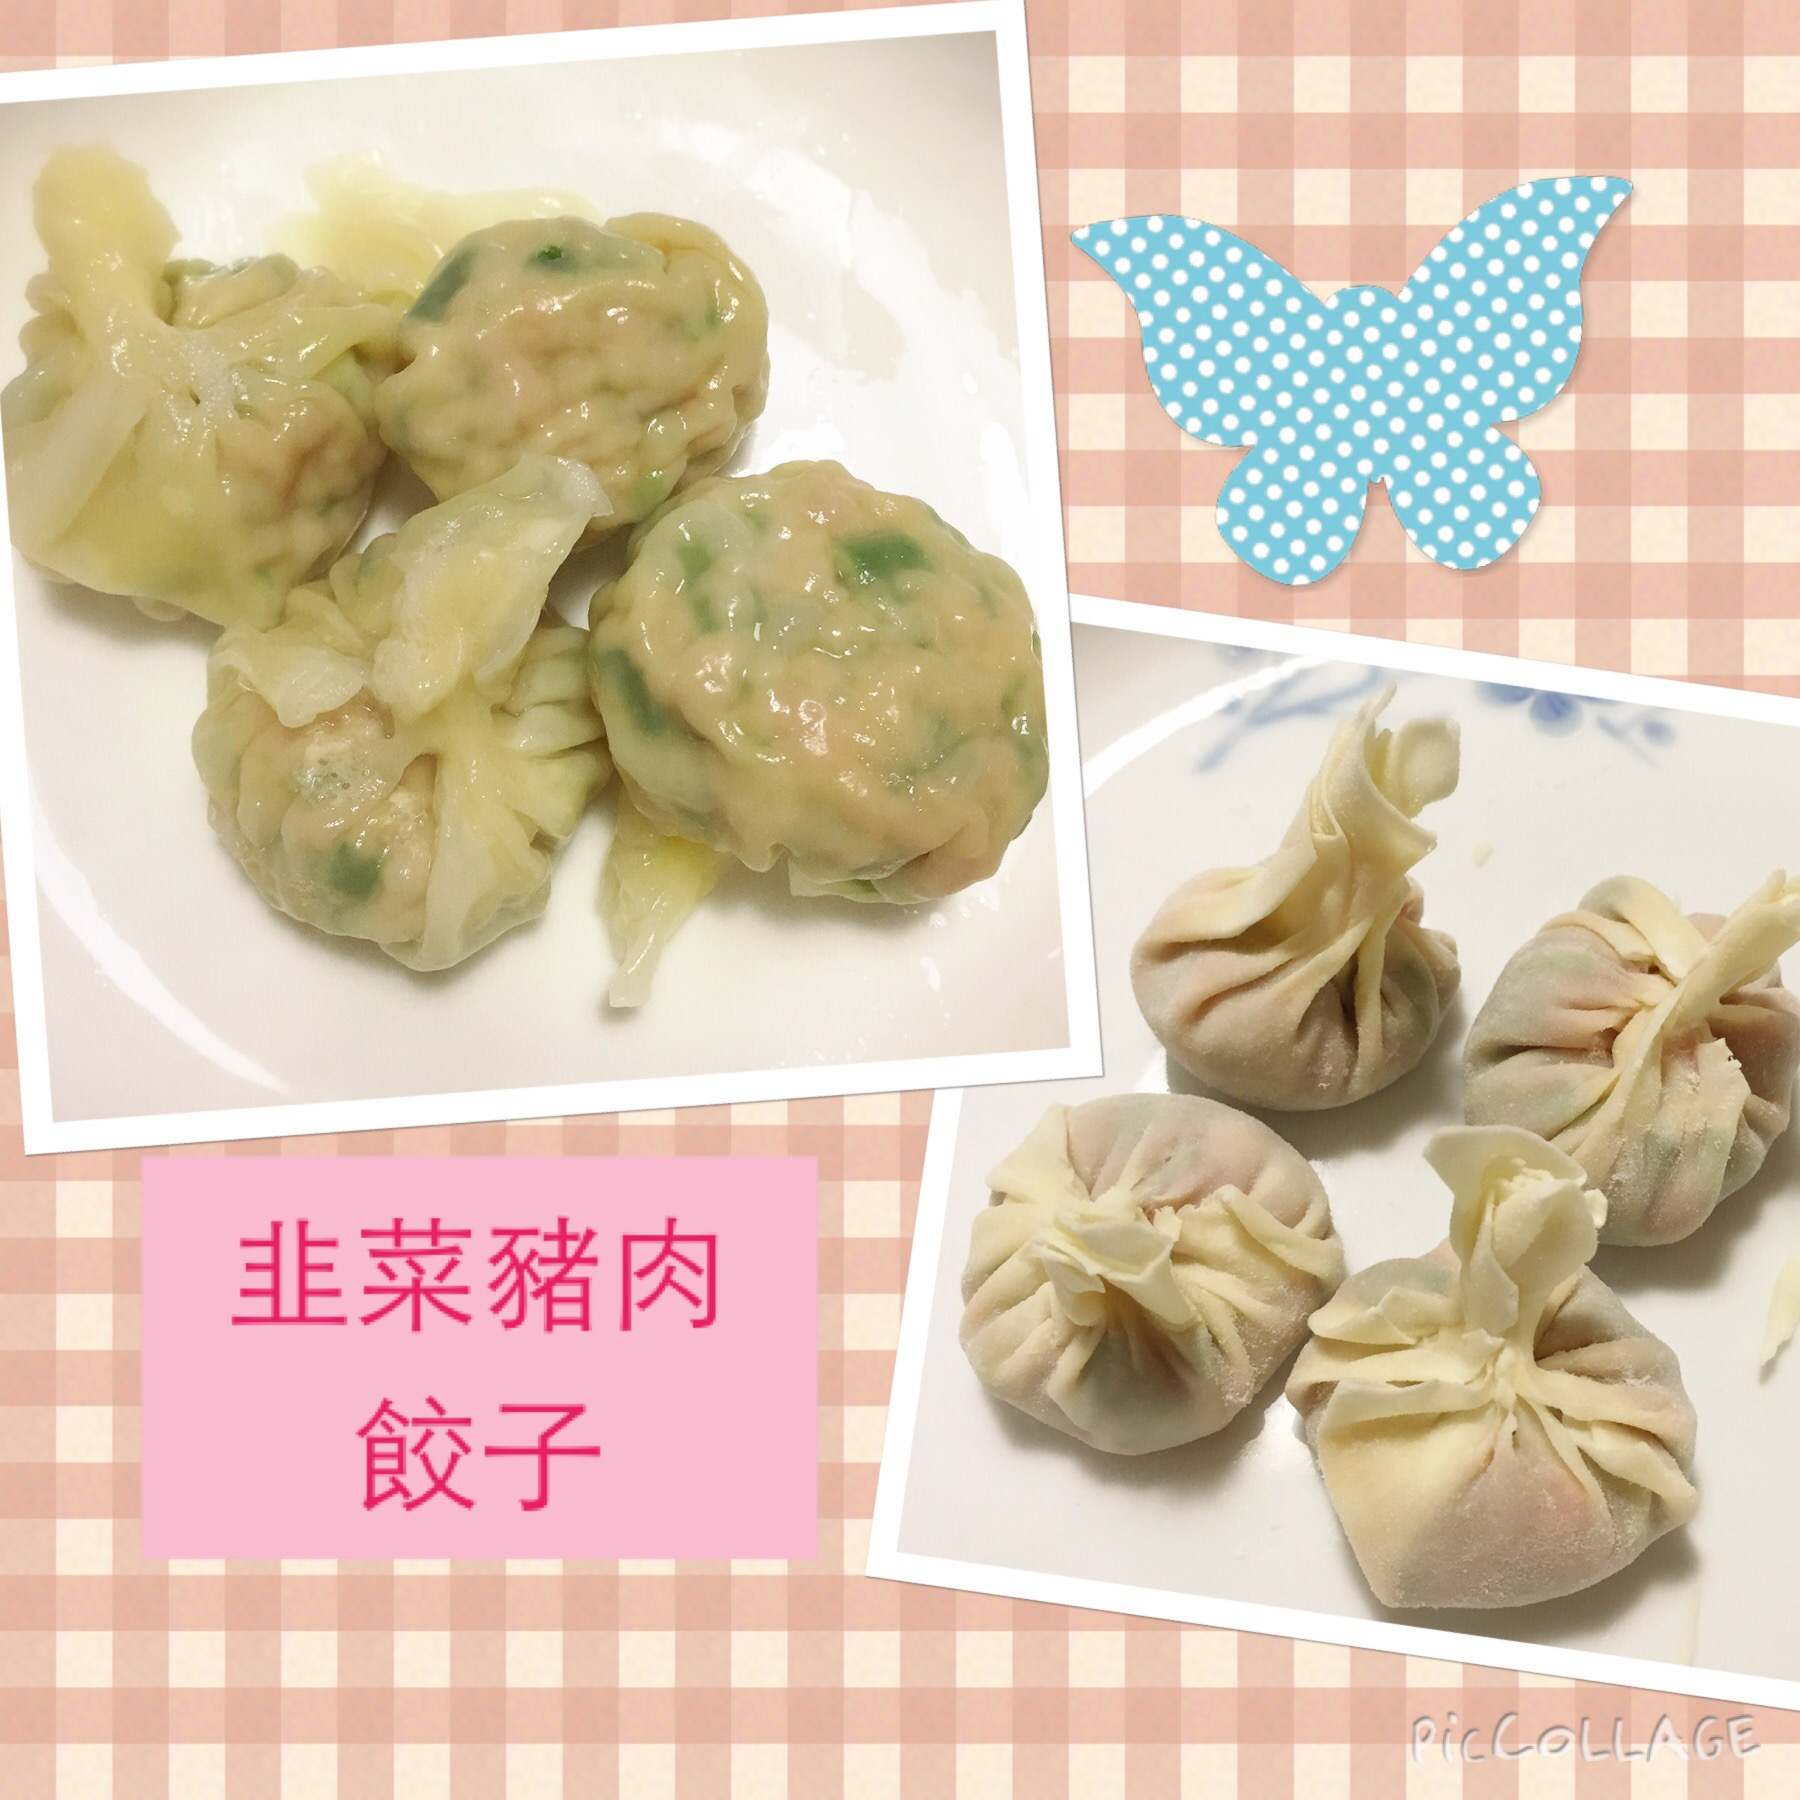 C: My First Dumplings